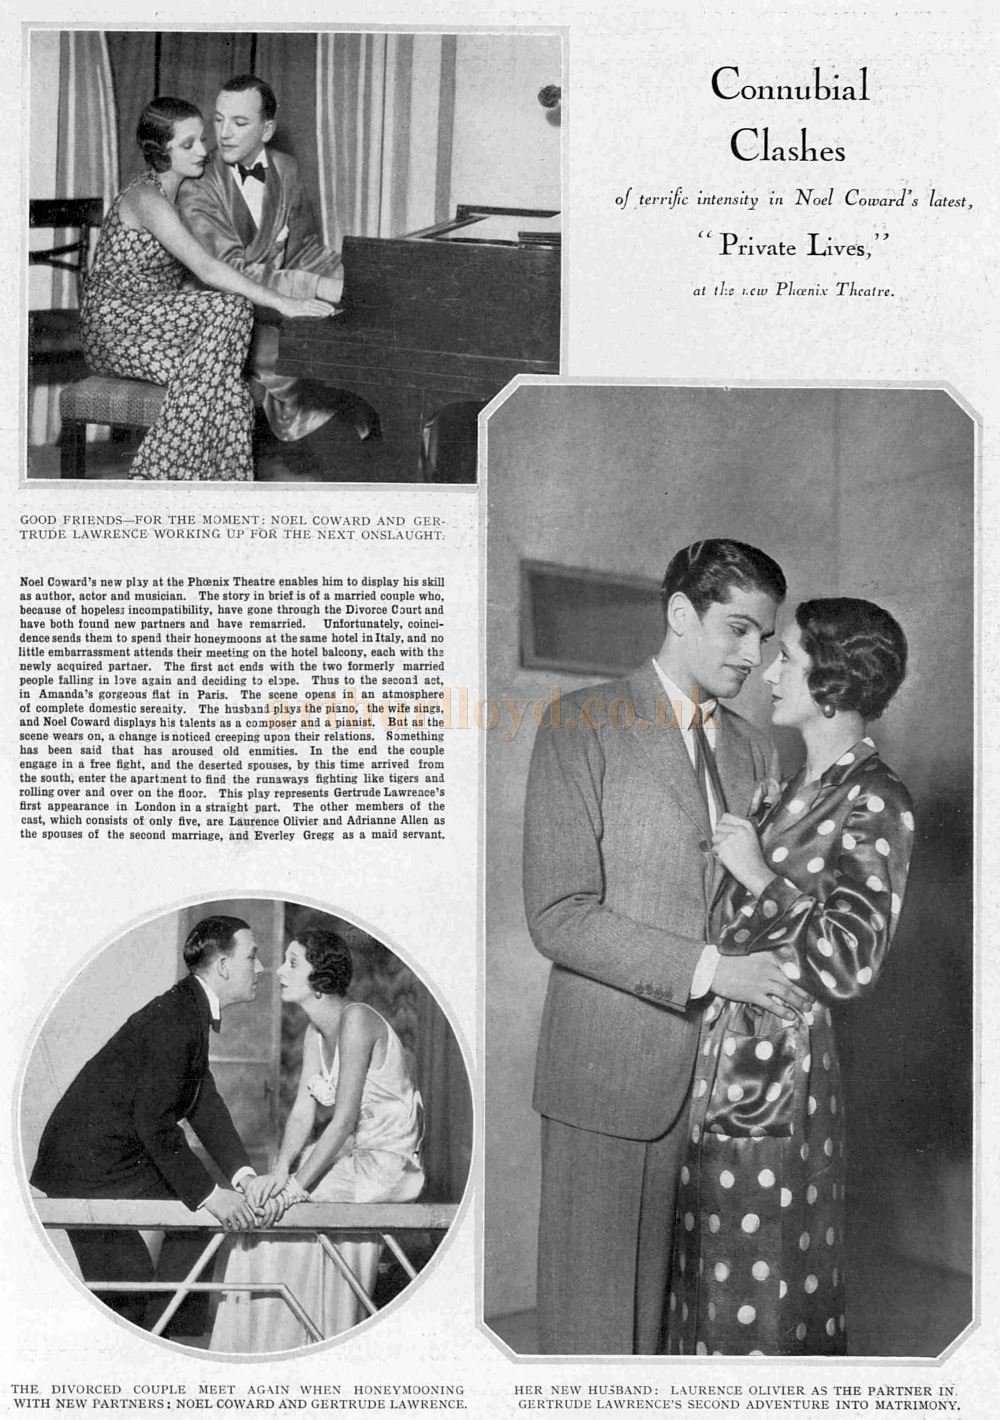 An Illustrated Article on the Opening Production of 'Private Lives' at the Phoenix Theatre in 1930 - From the Illustrated Sporting and Dramatic News, 27th of September of 1930.